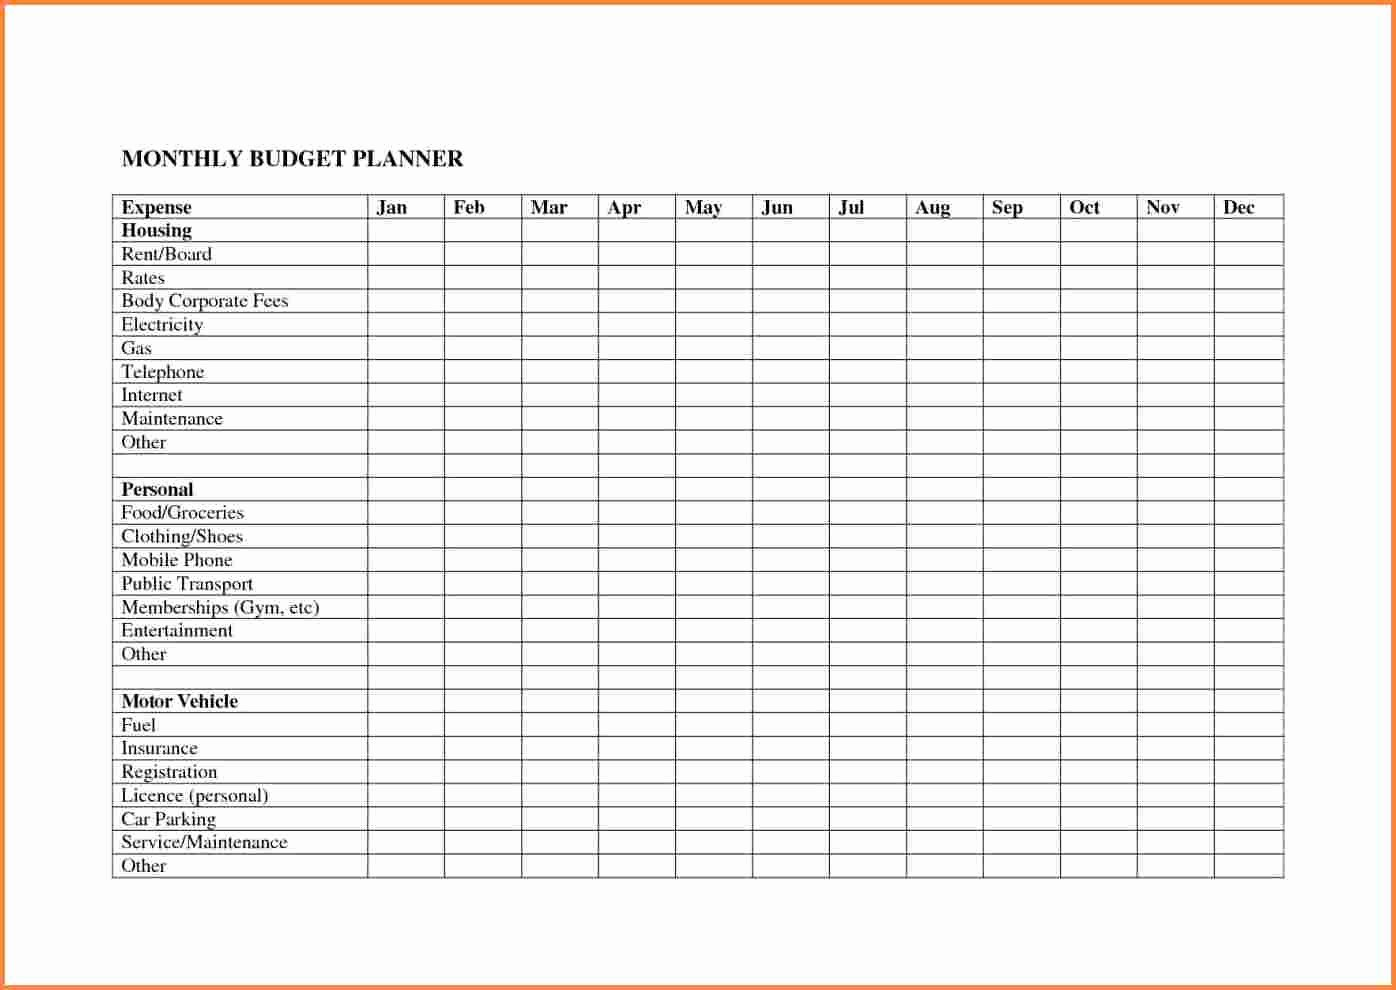 Monthly Budget Worksheet Excel Elegant 10 Monthly Bud Planner Spreadsheet